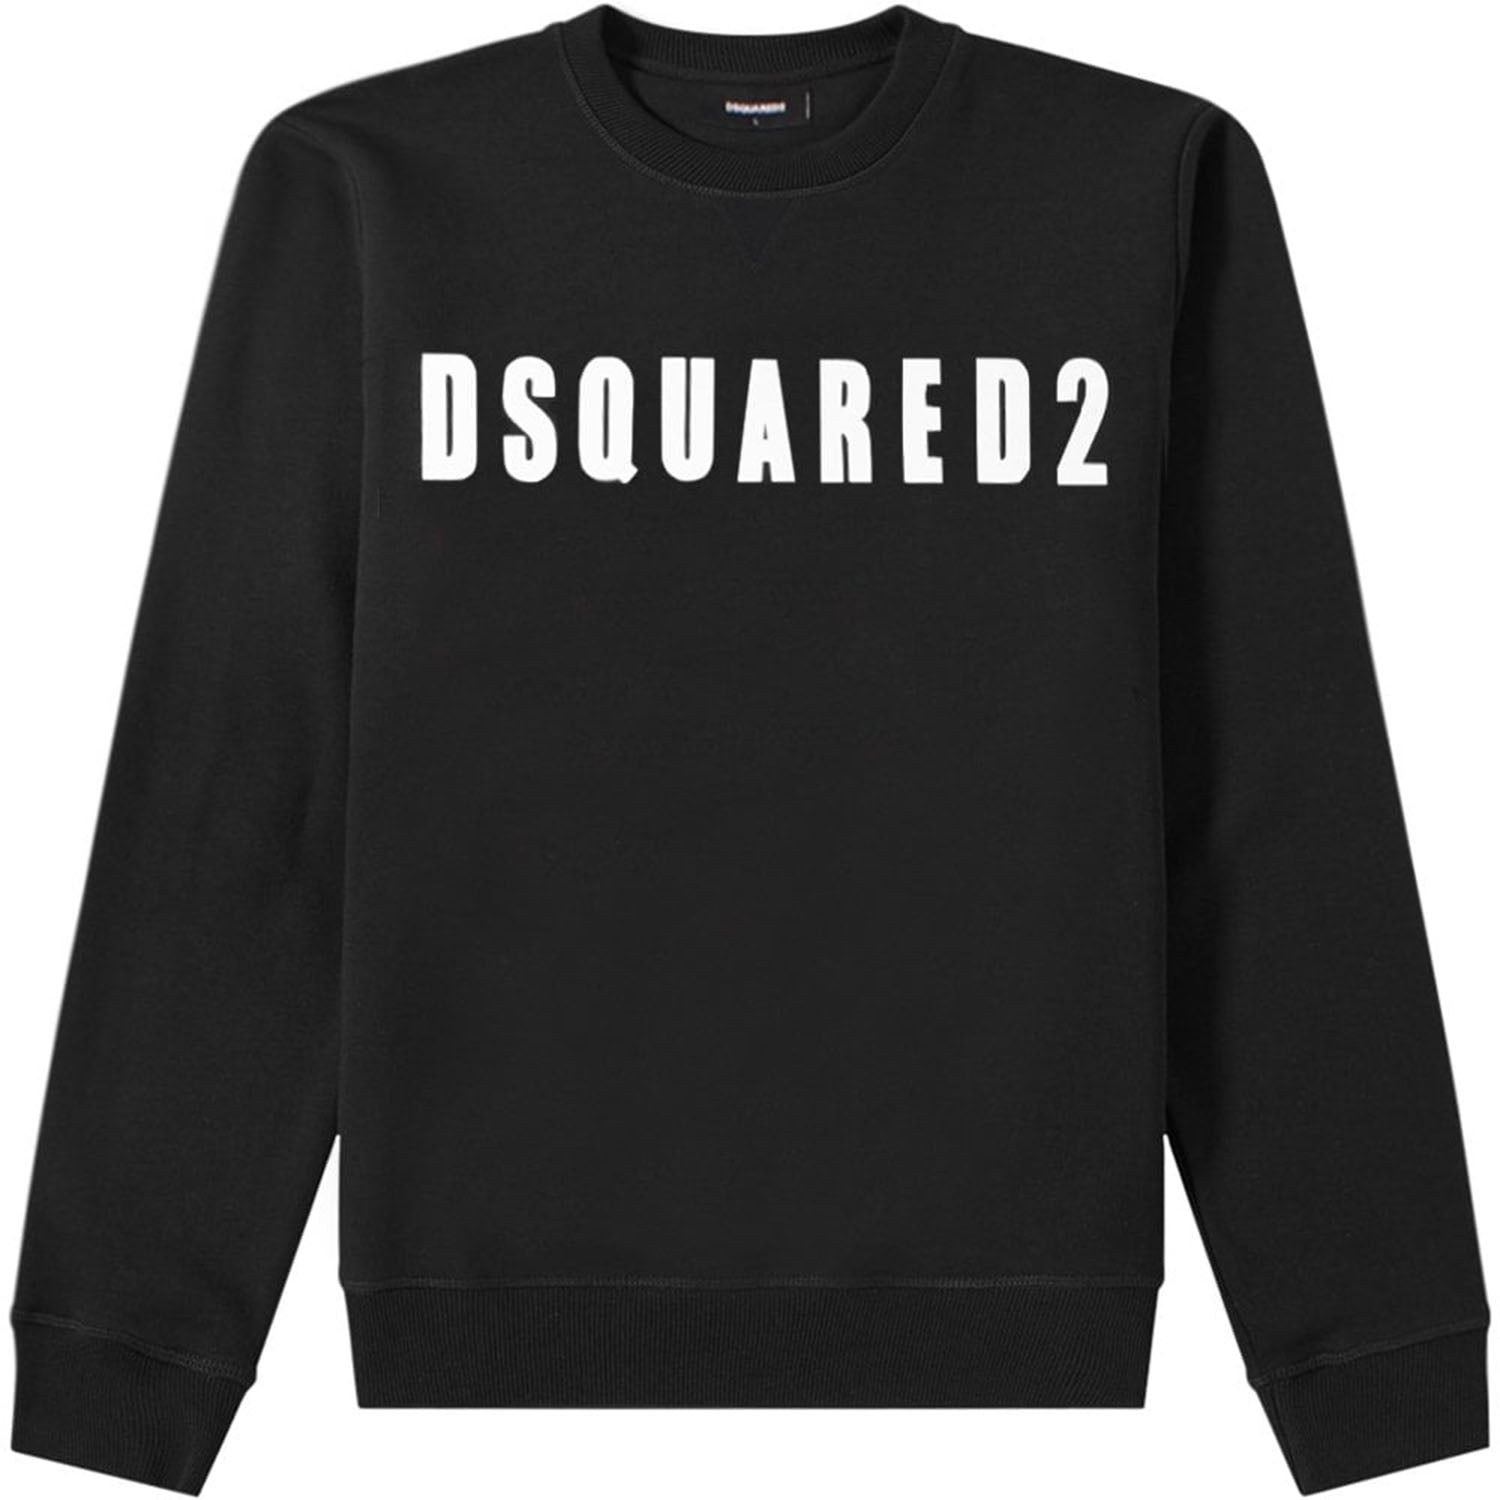 DSquared2 Black Logo Print Sweatshirt